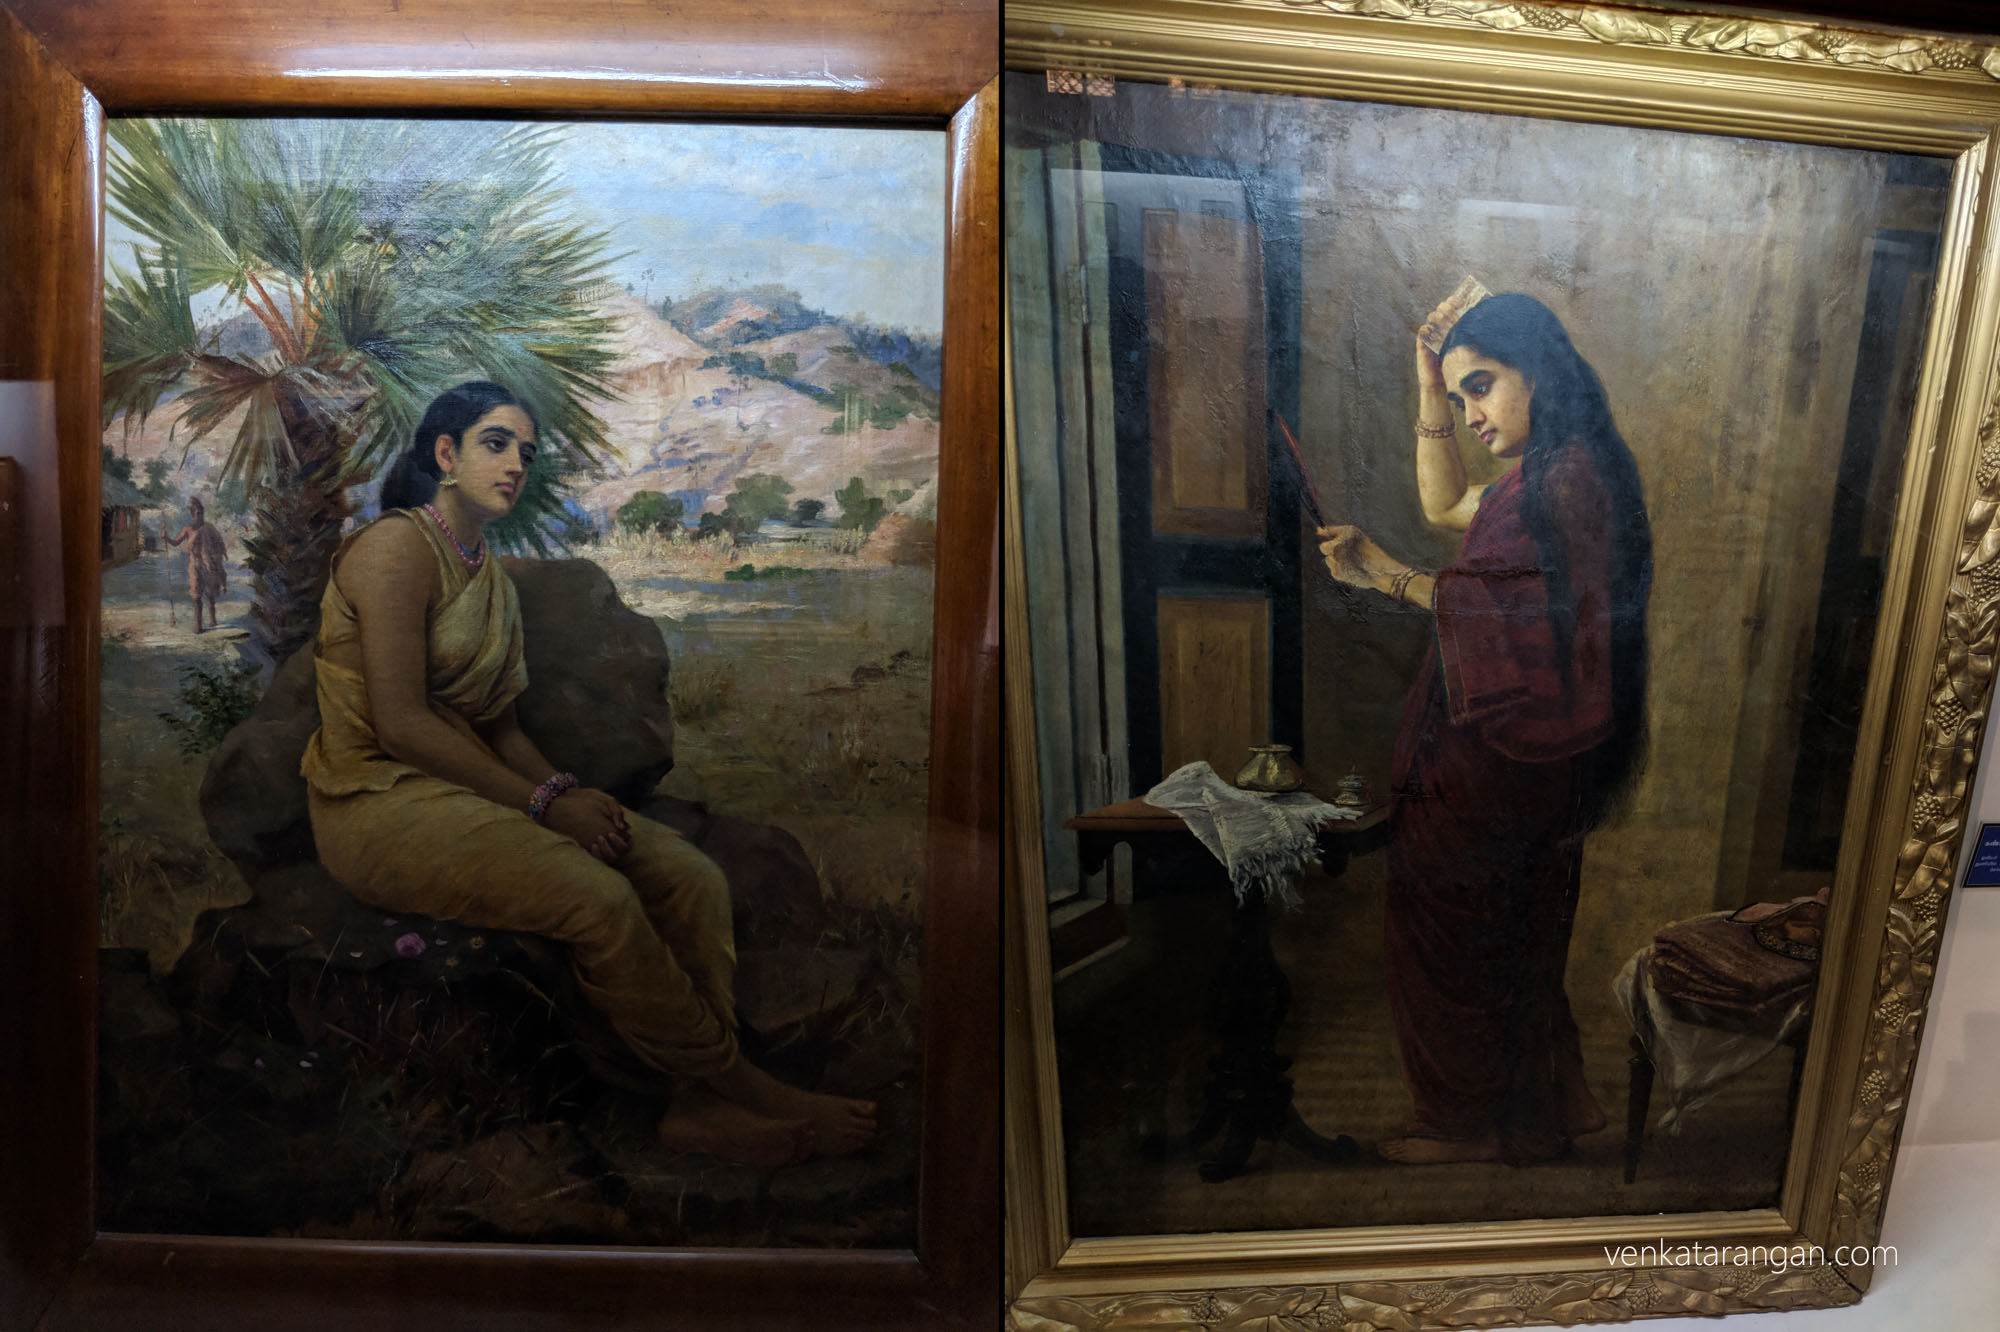 Left-Sakuntala (சகுந்தலா). Right-The Lady with a Mirror (1894)